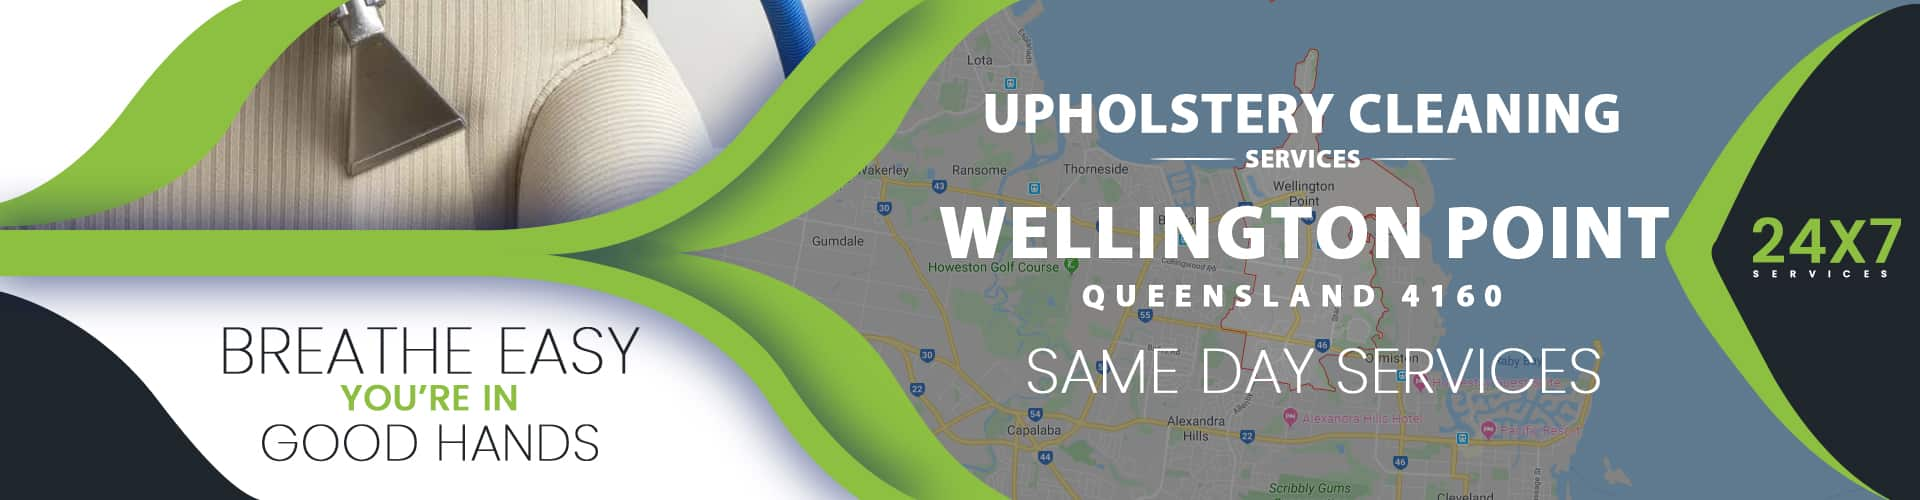 Upholstery Cleaning Wellington Point